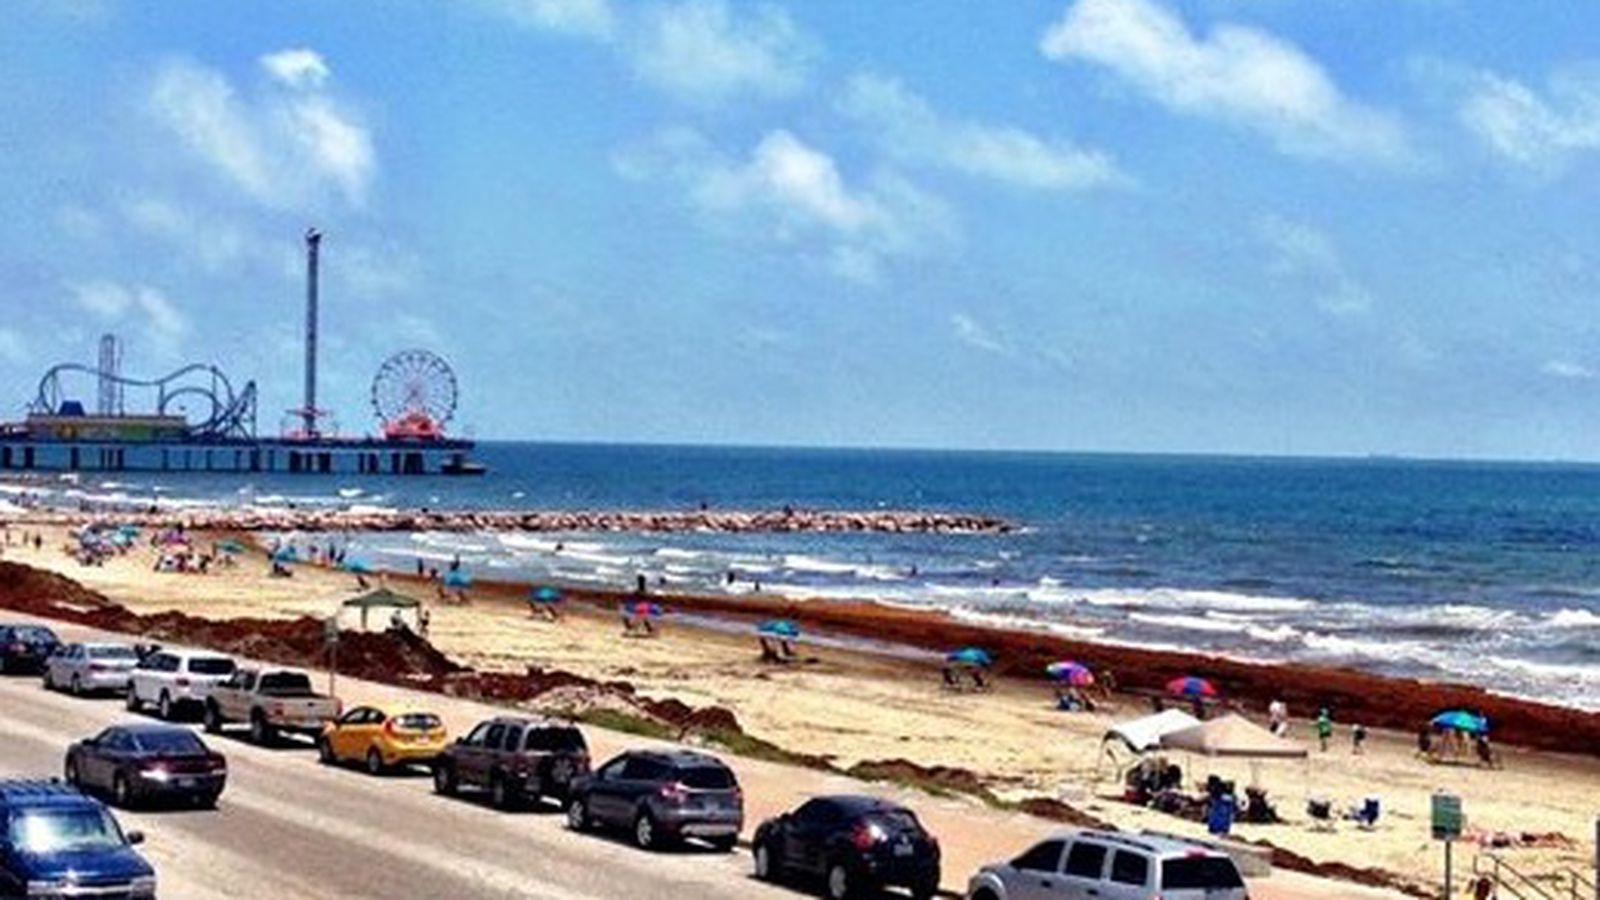 Best places to eat drink in galveston according to you for Best fishing spots in galveston